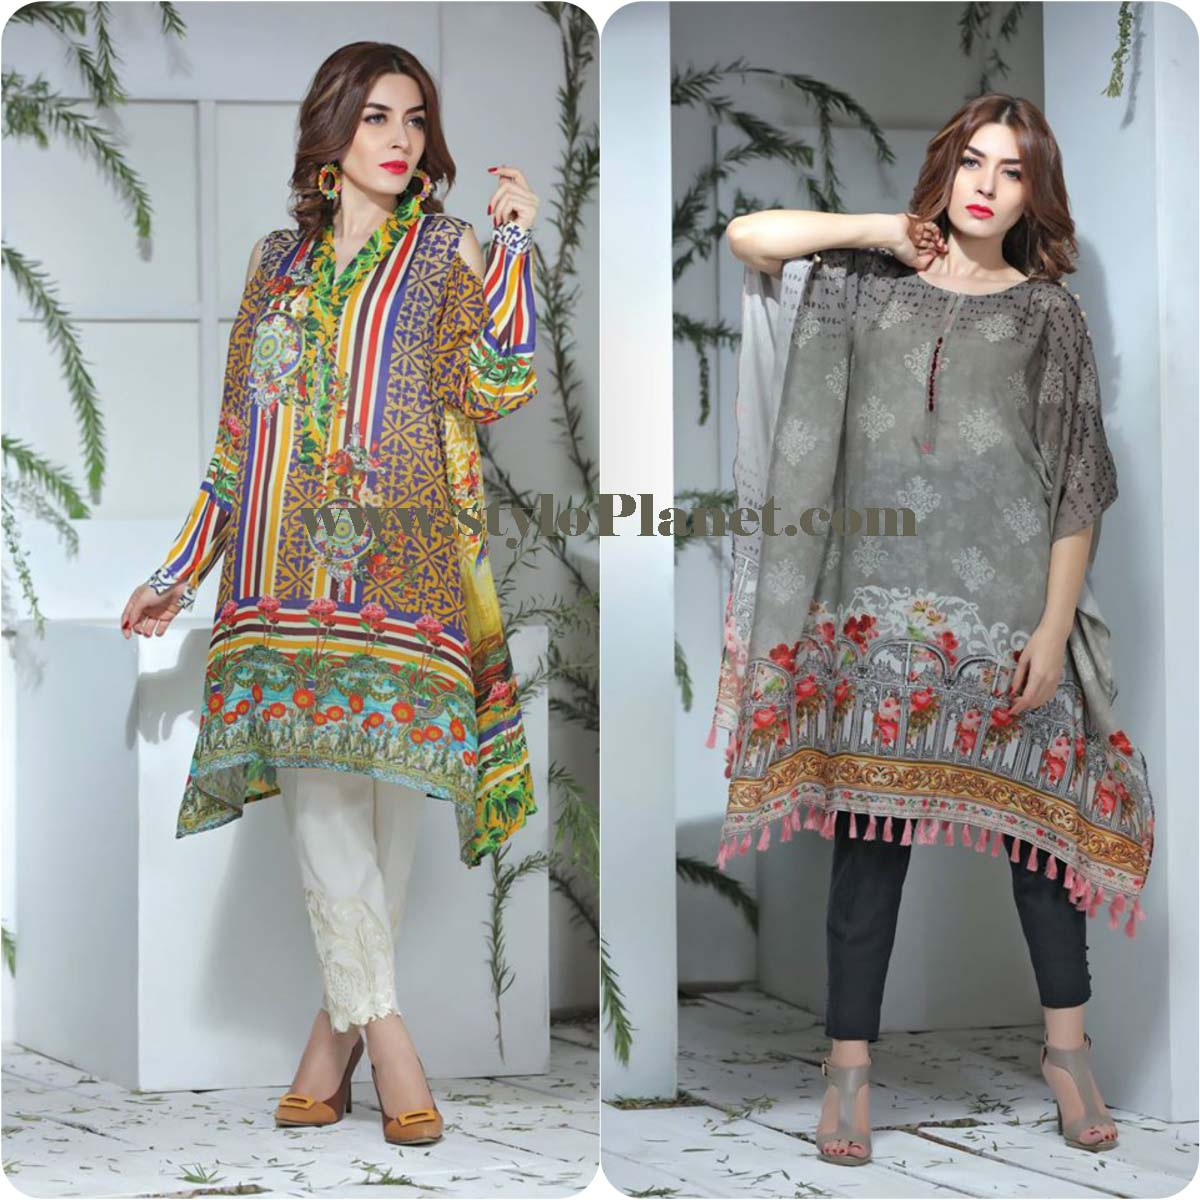 So Kamal Digital Embroidered Shirt Collection 2016-2017 Cambric Pret Dresses (24)